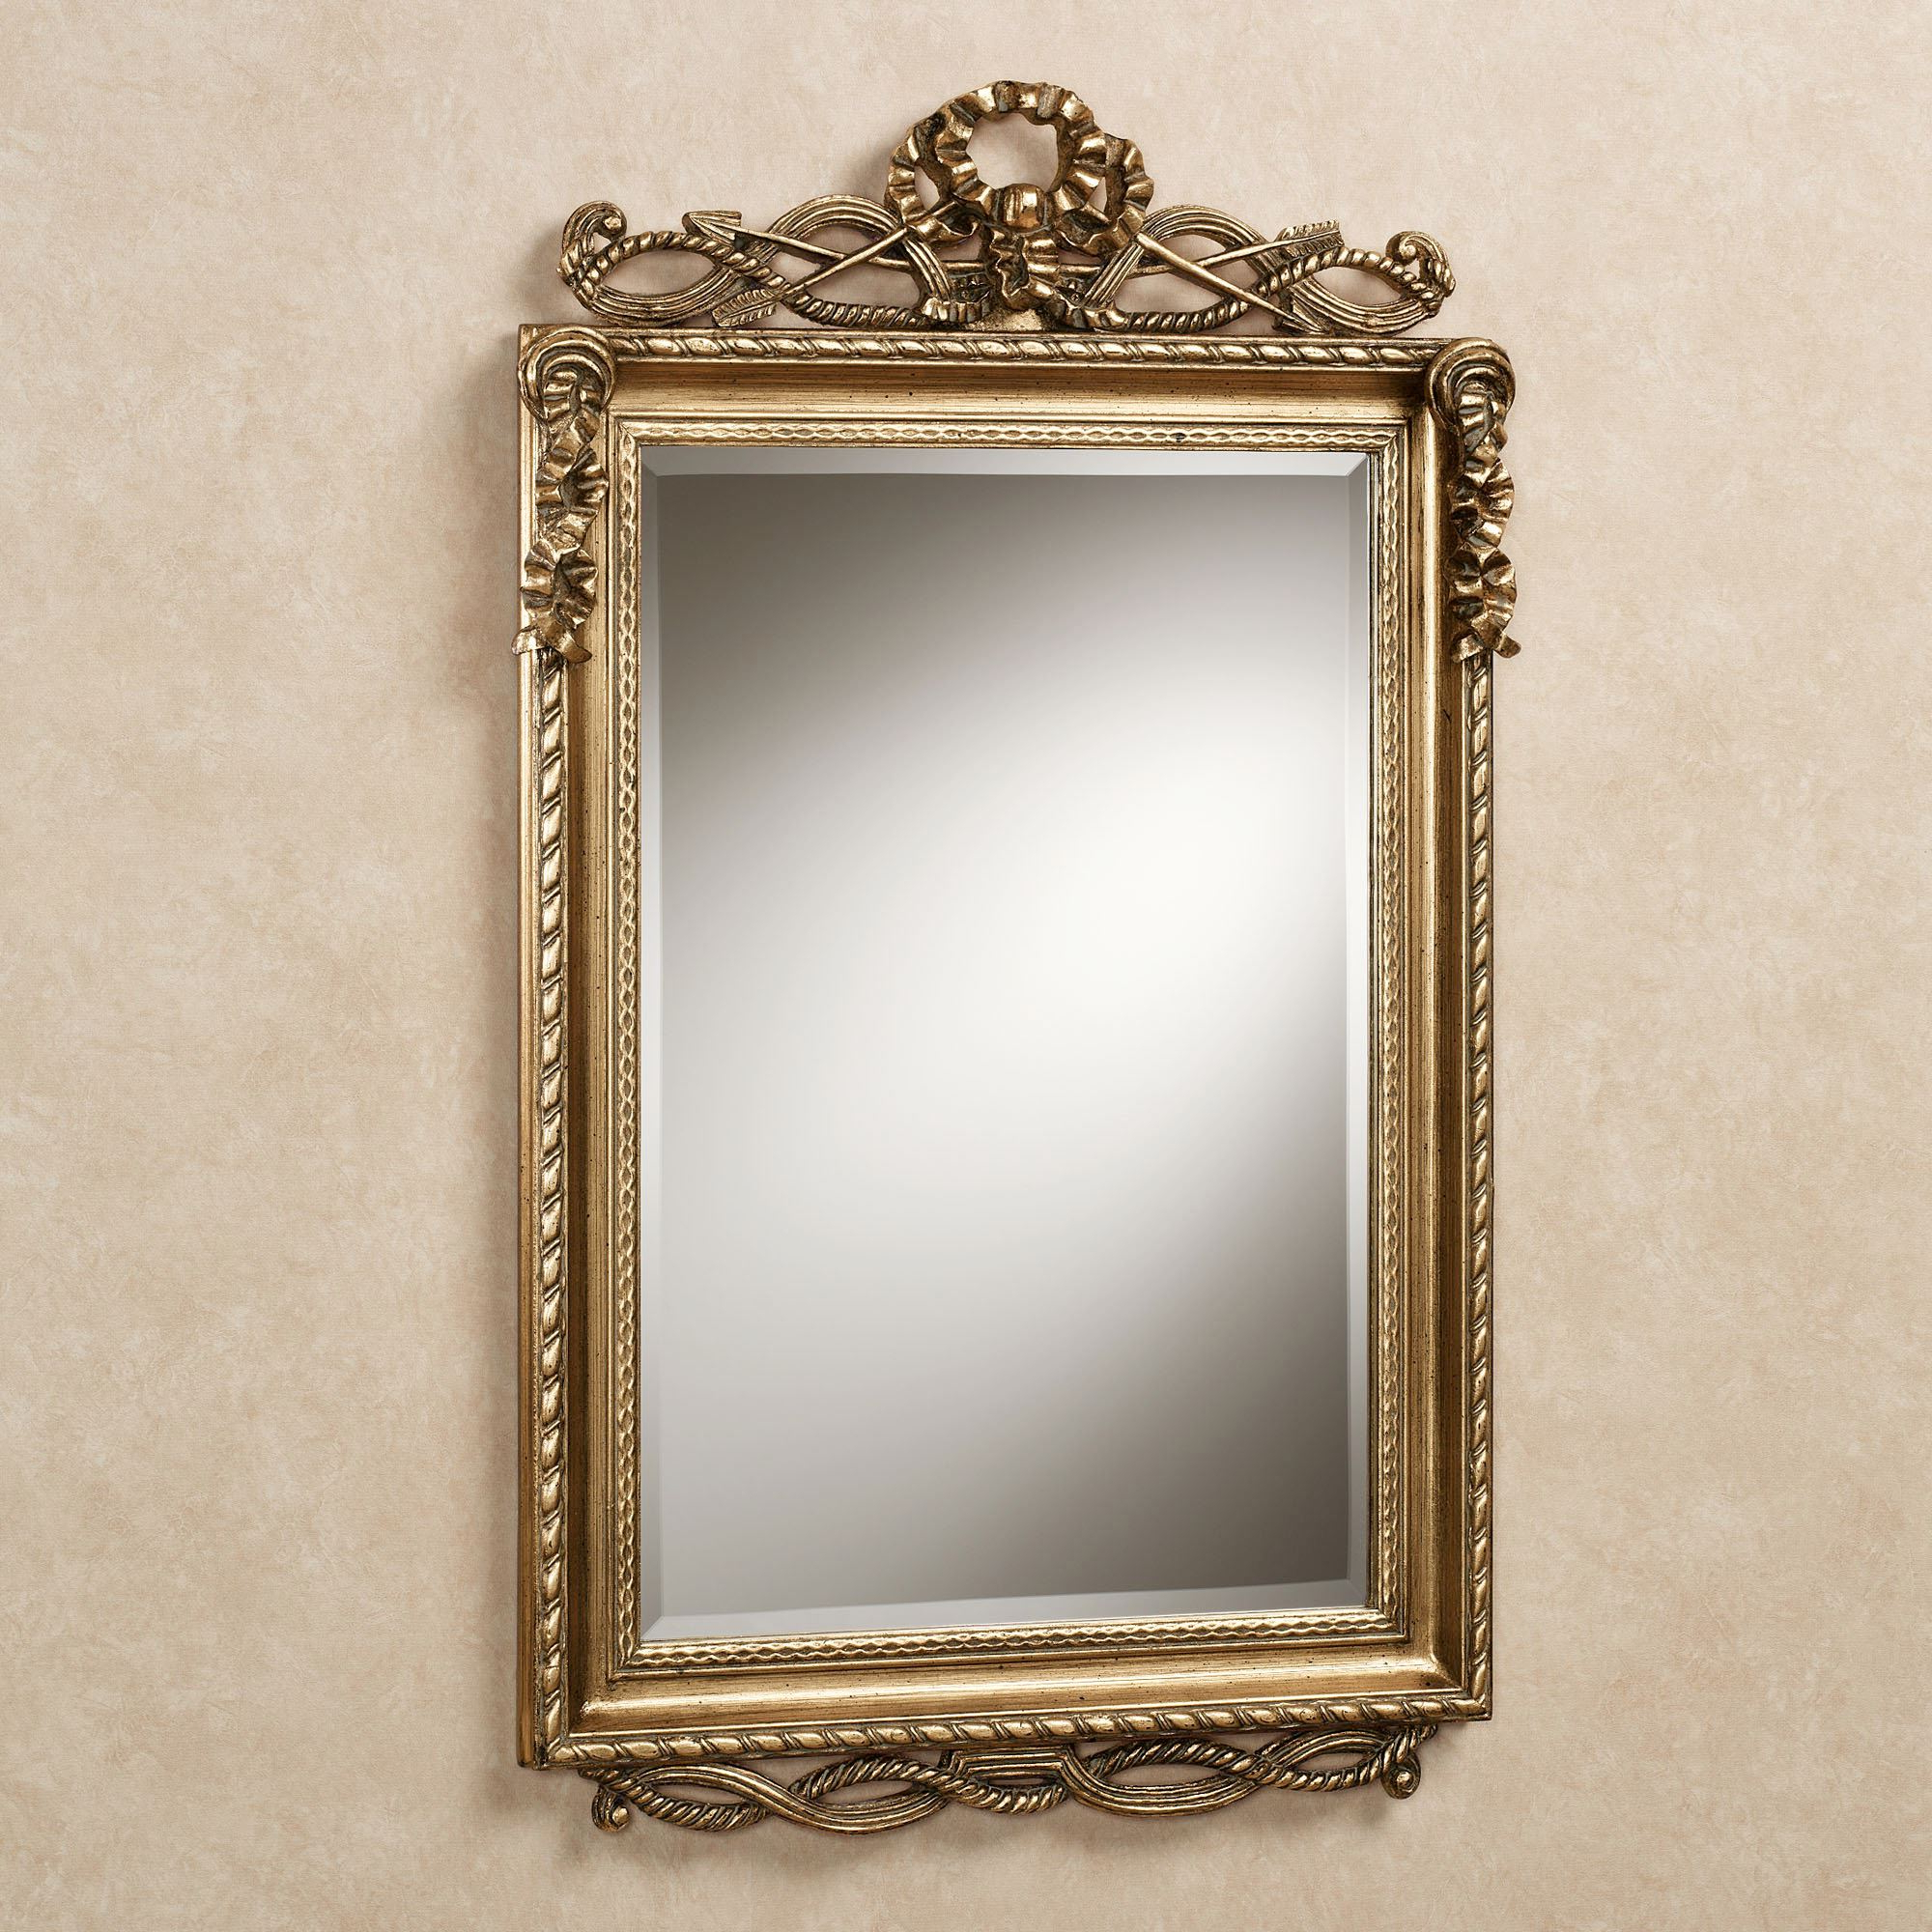 Lancaster Twist Design Rectangular Wall Mirror With Most Recently Released Traditional Metal Wall Mirrors (Gallery 9 of 20)